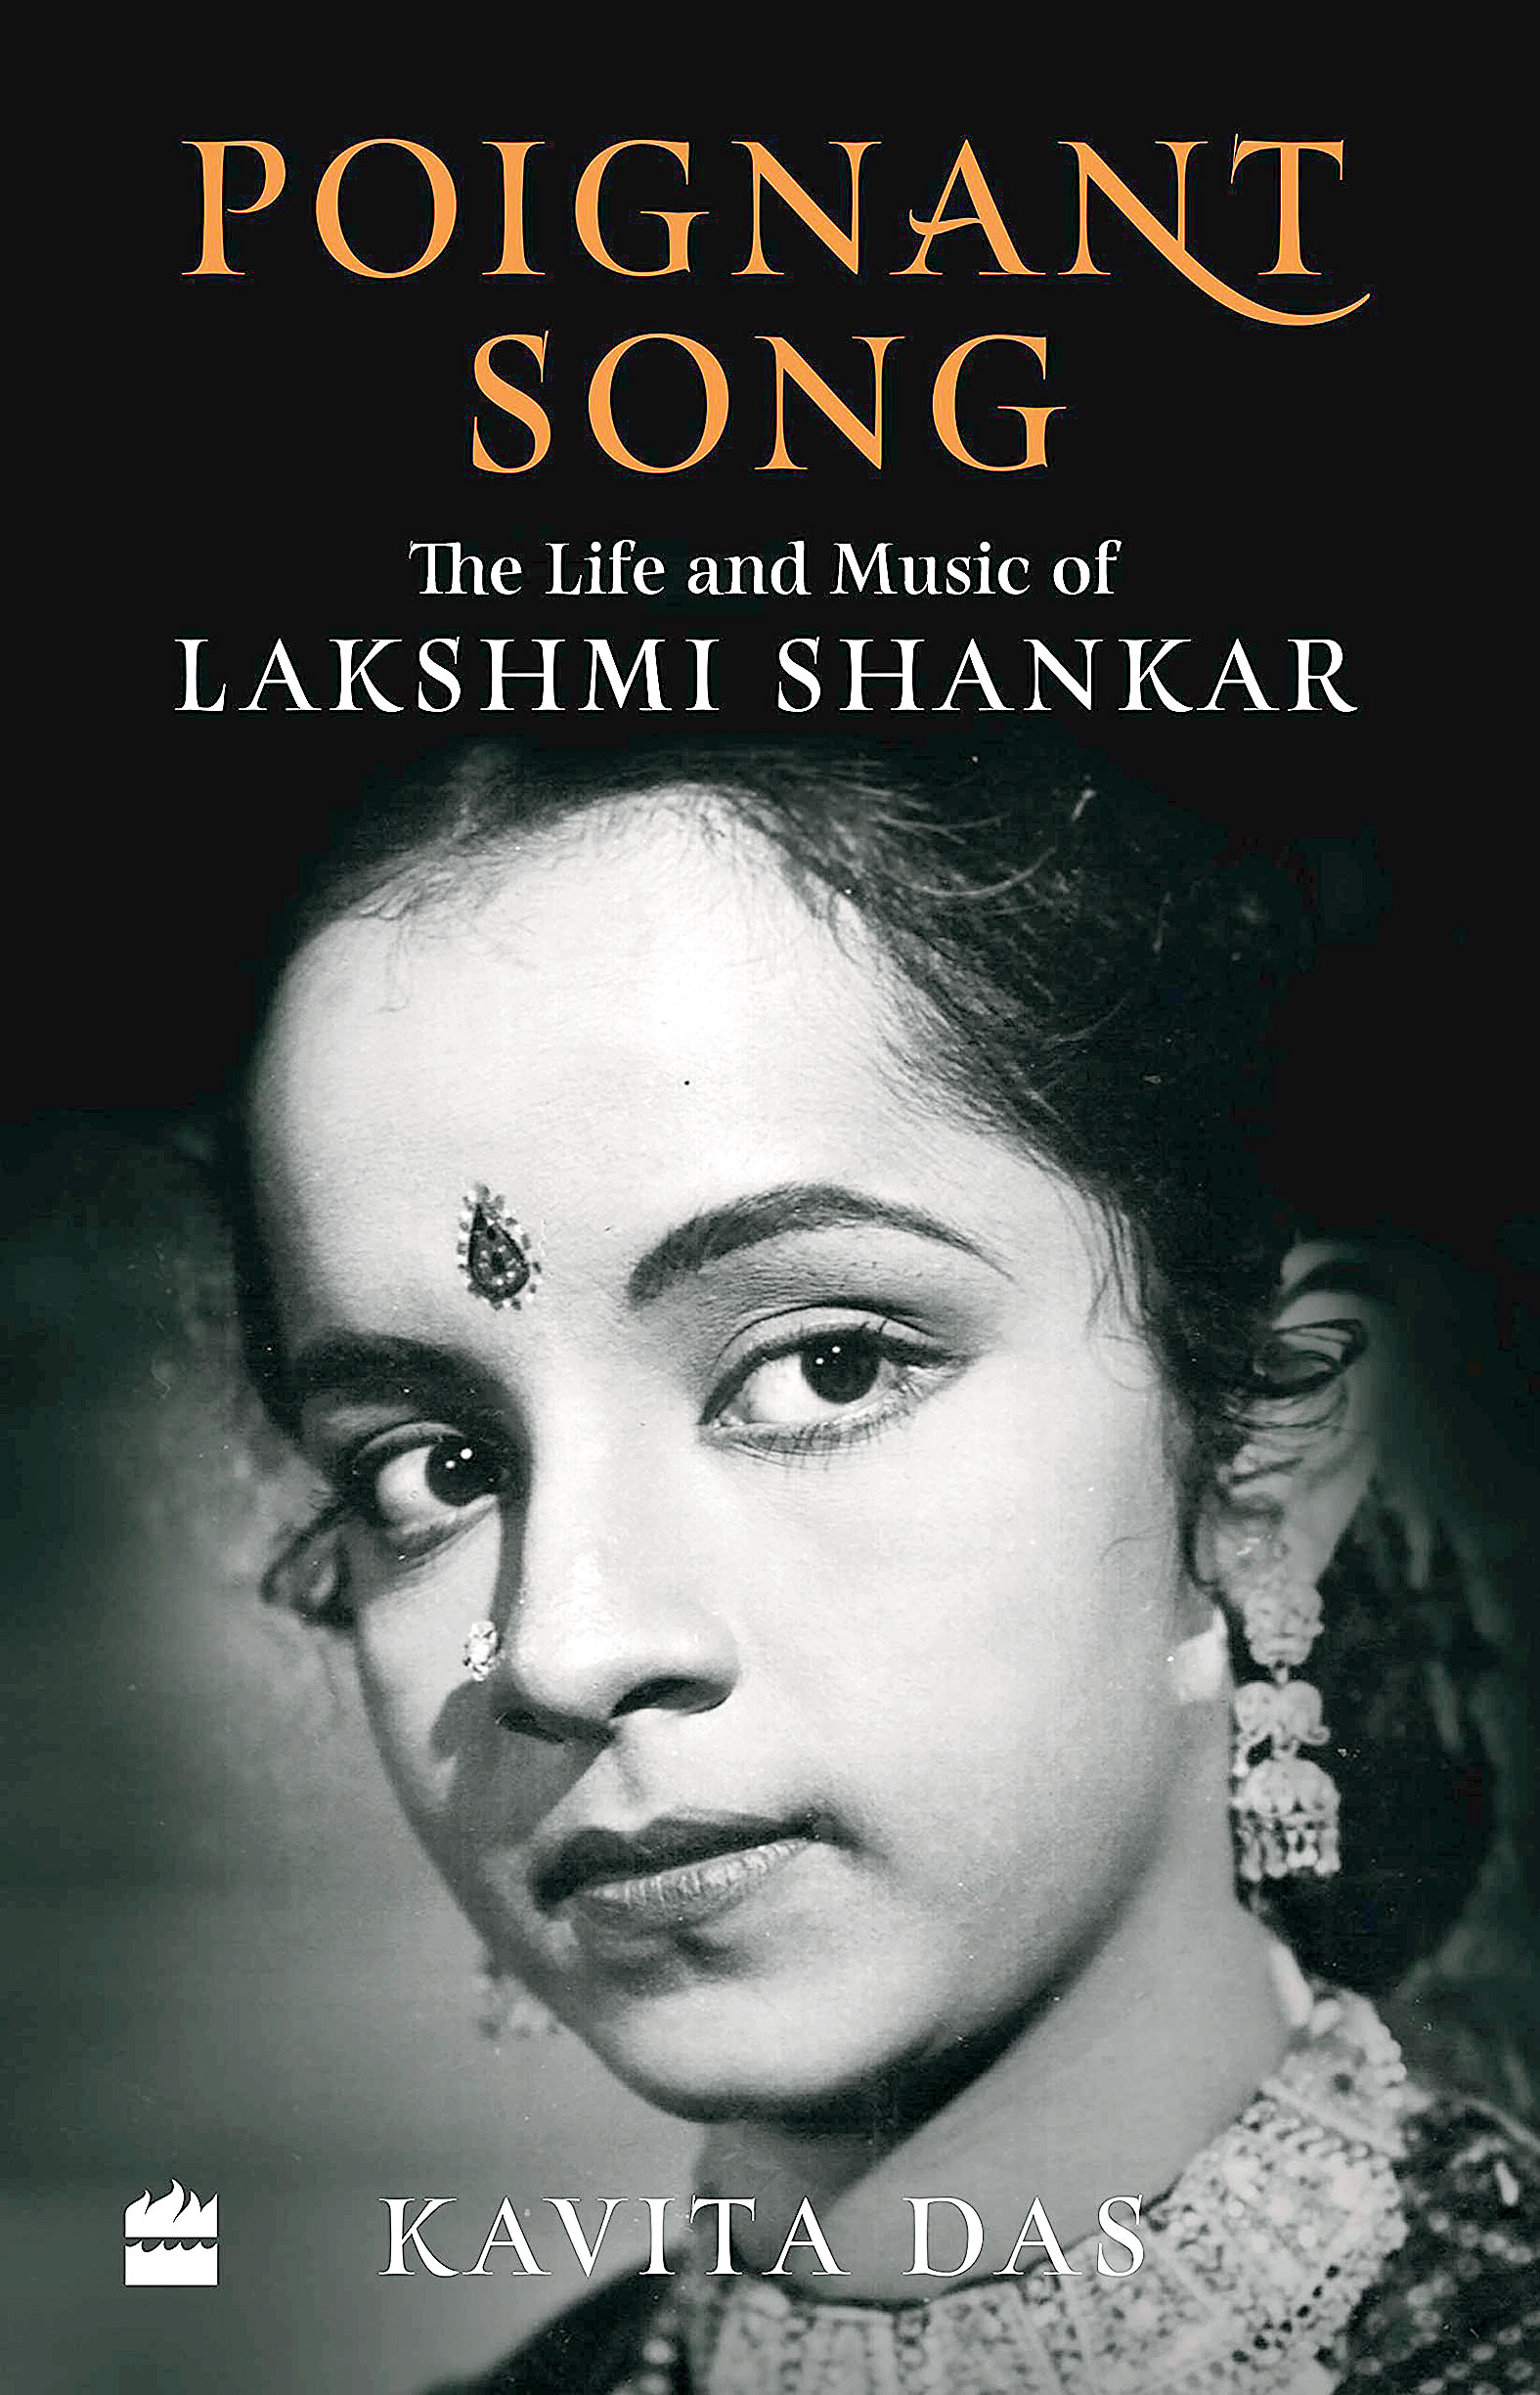 Poignant Song: The Life and Music of Lakshmi Shankar by Kavita Das; Harper Collins, 268 pages; Rs 399